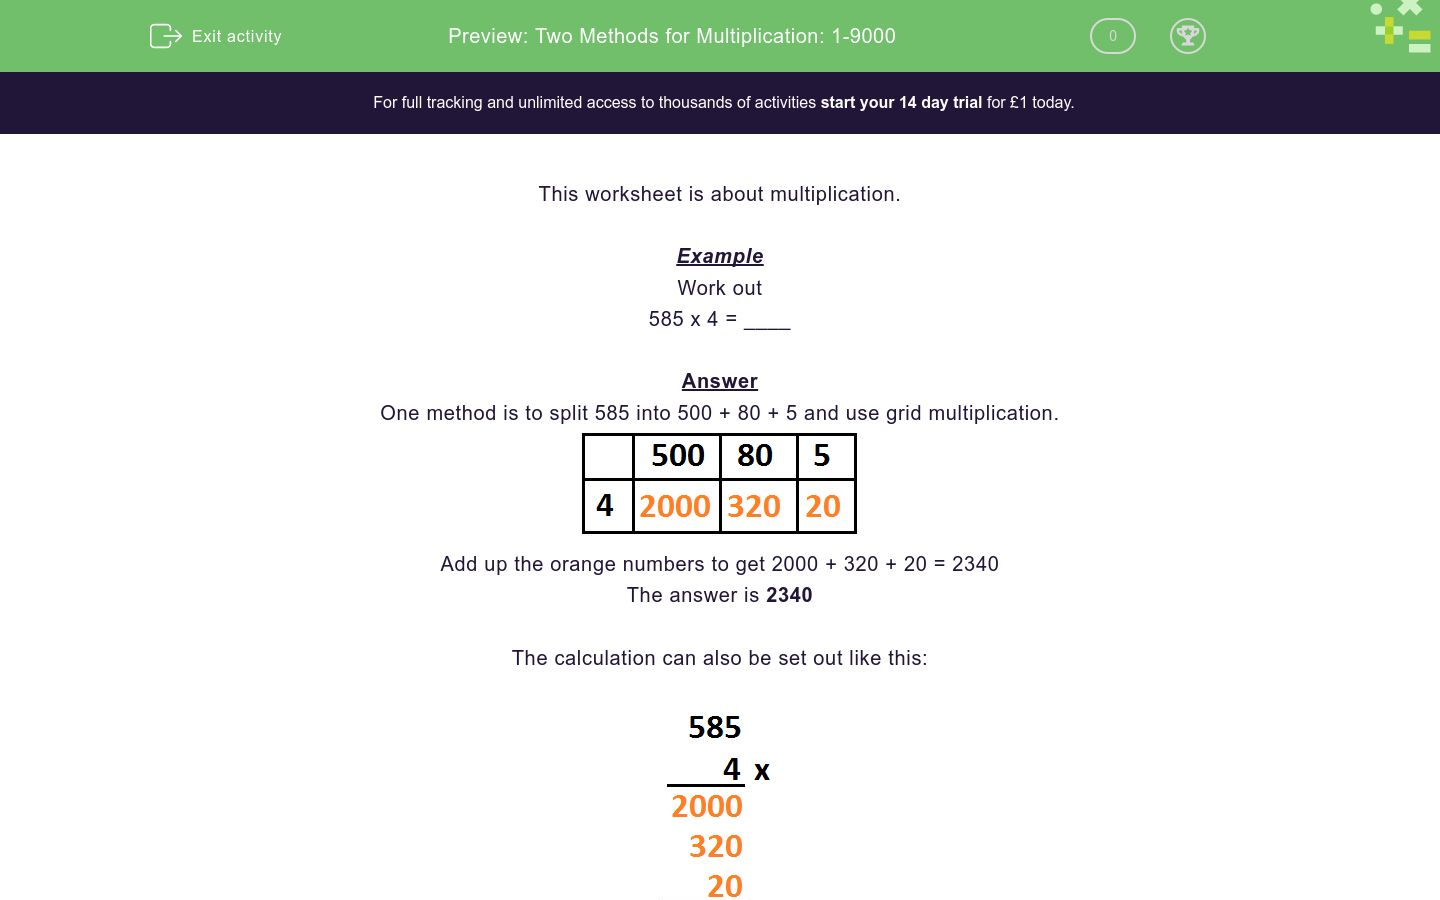 'Two Methods for Multiplication: 1-9000' worksheet